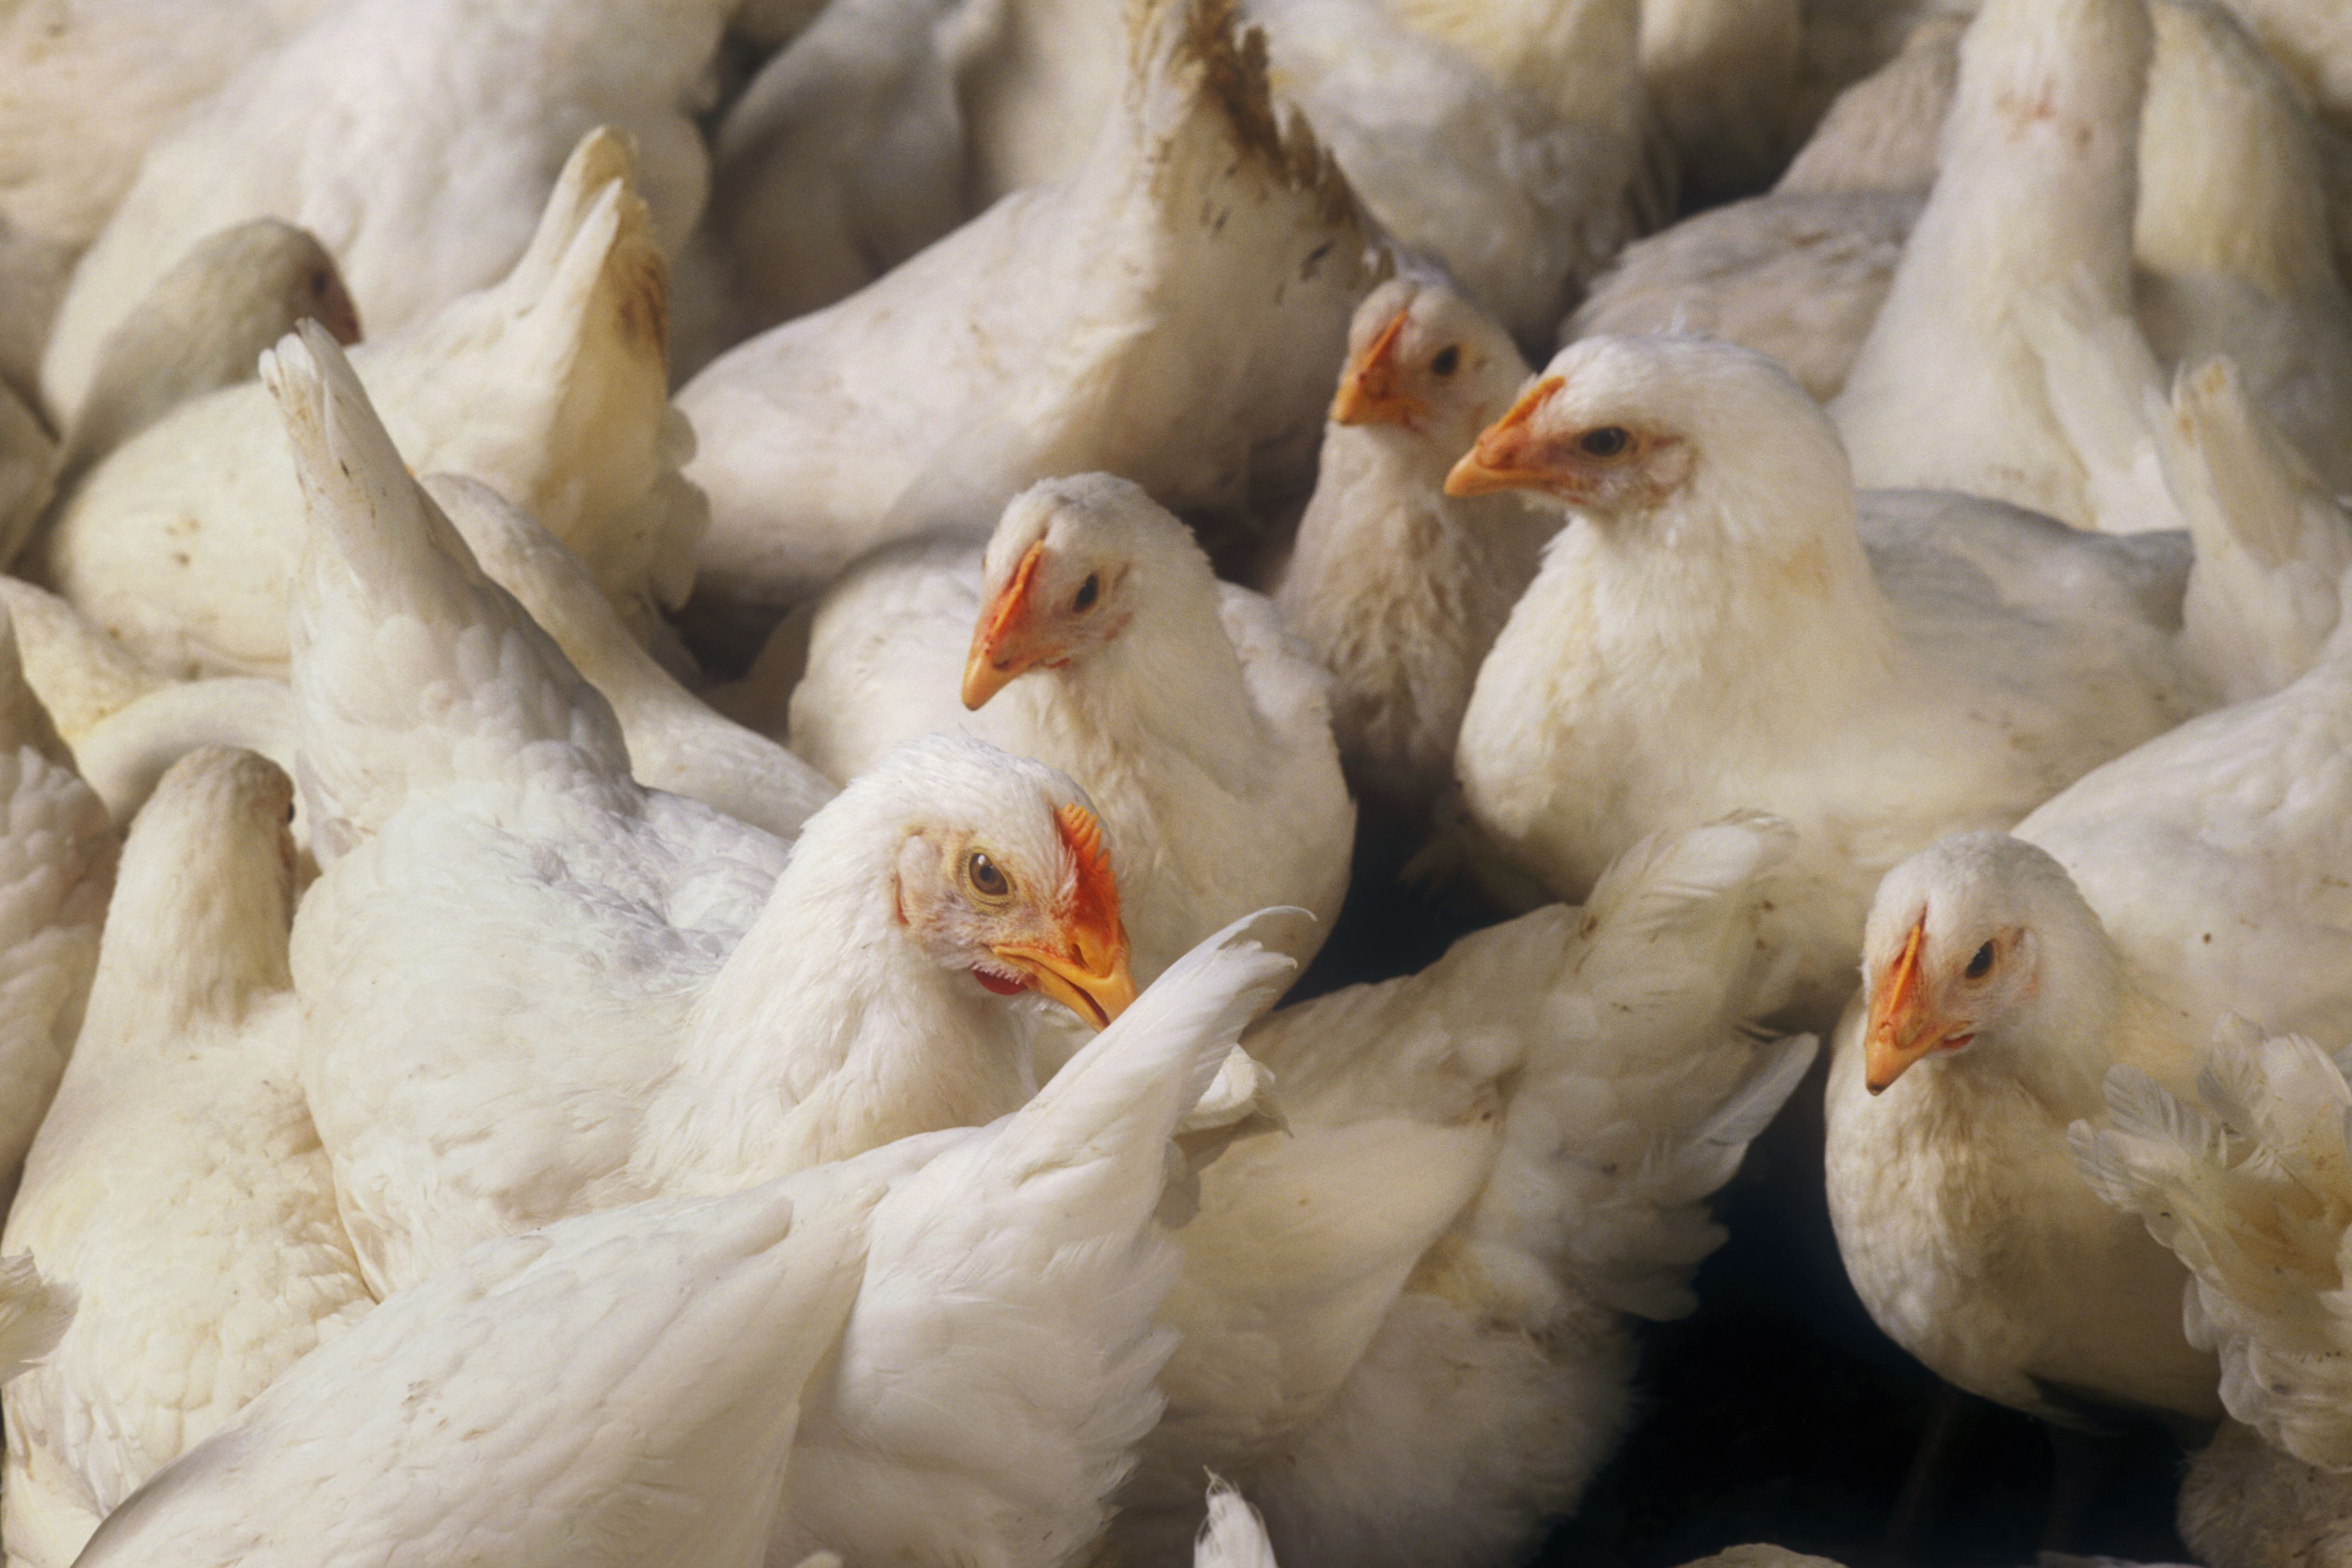 In a letter to RTA chicken producers, Red Tractor says studies have shown that bird behaviour, health and development are negatively affected by low light intensities, and that when given a choice birds consistently prefer higher light intensities. Photo: Design Pics Inc/Rex/Shutterstock